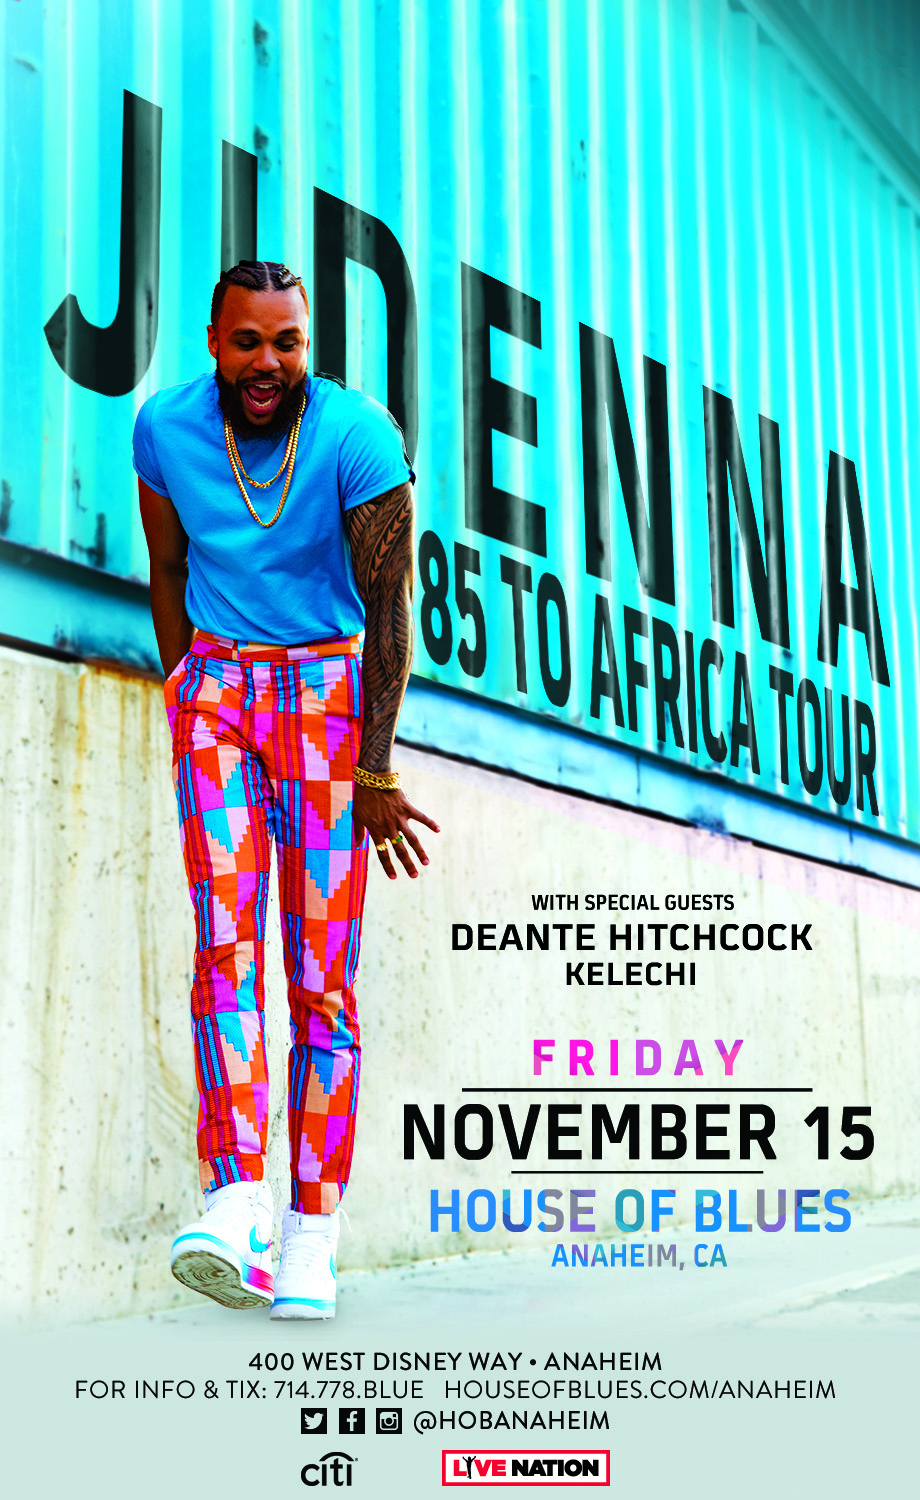 JIDENNA – 85 to Africa Tour